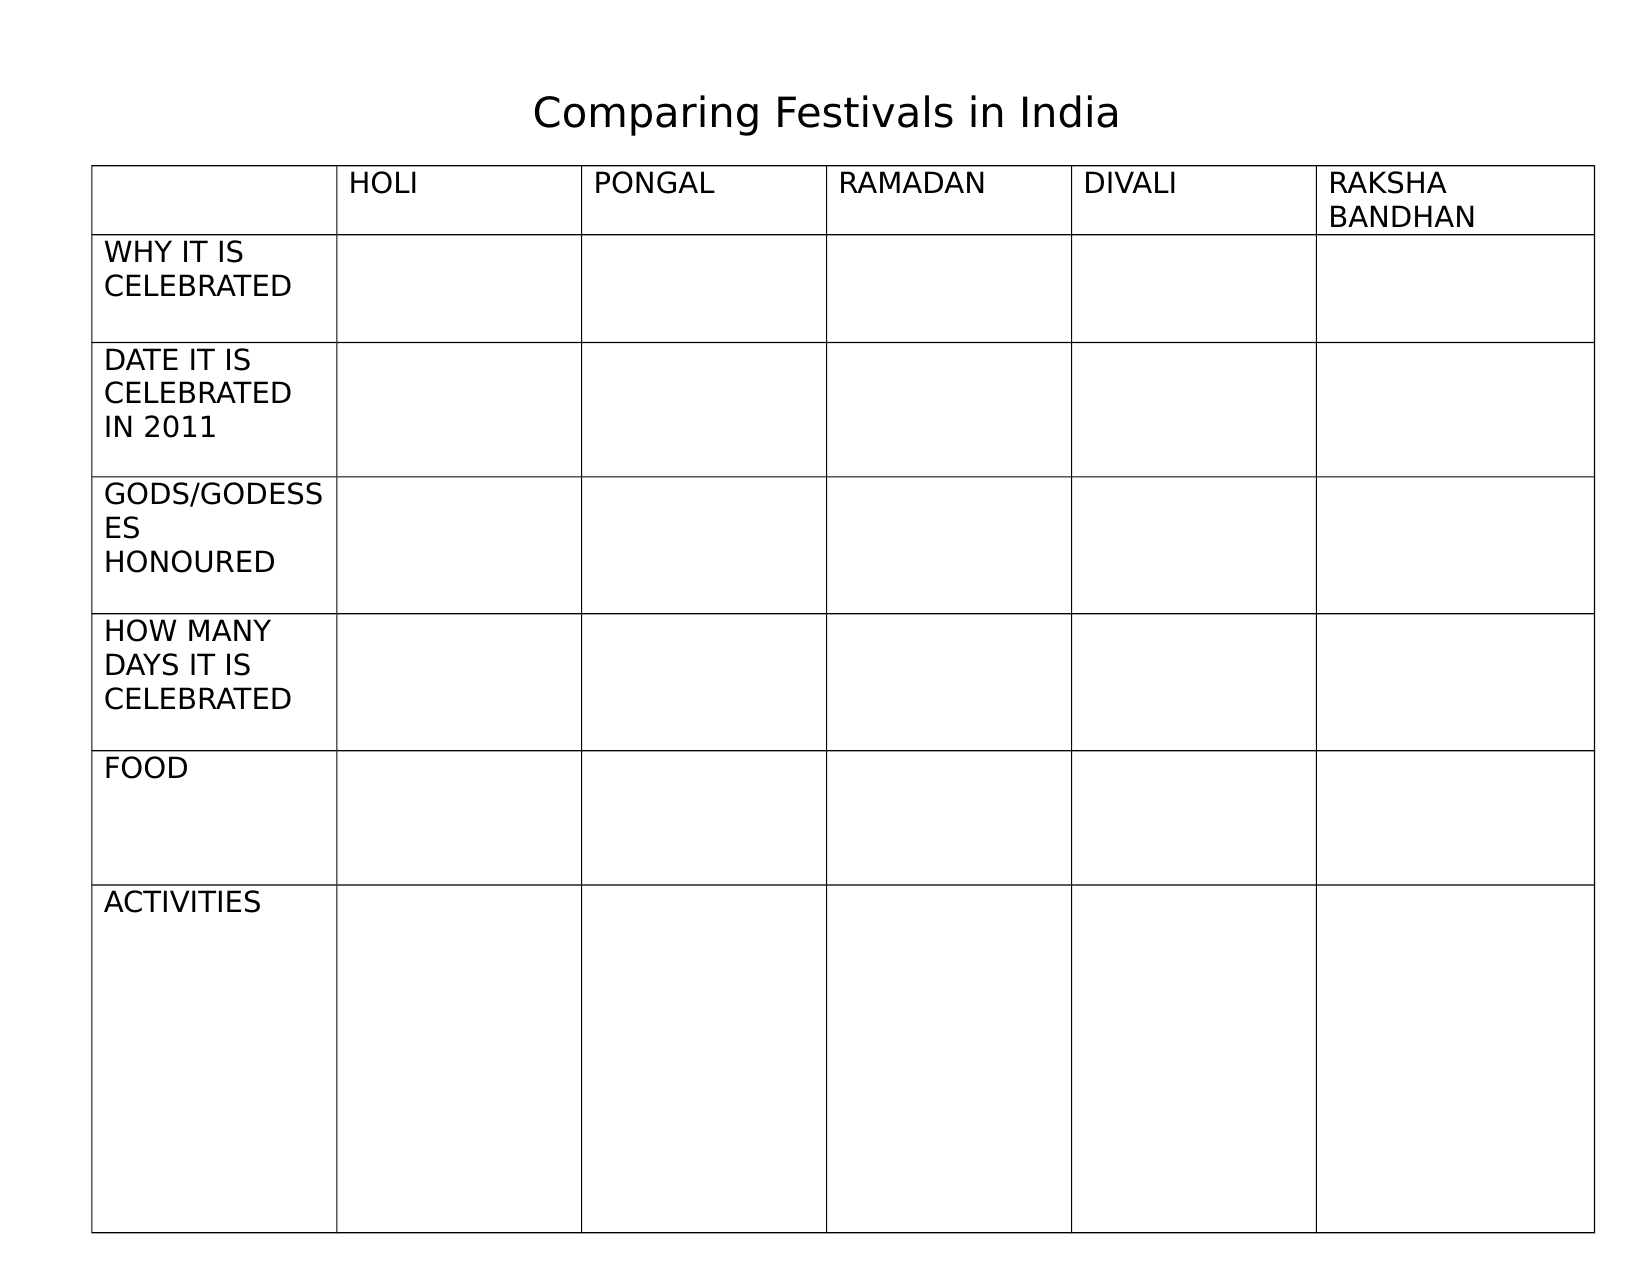 Comparing Festivals in India Resource Preview